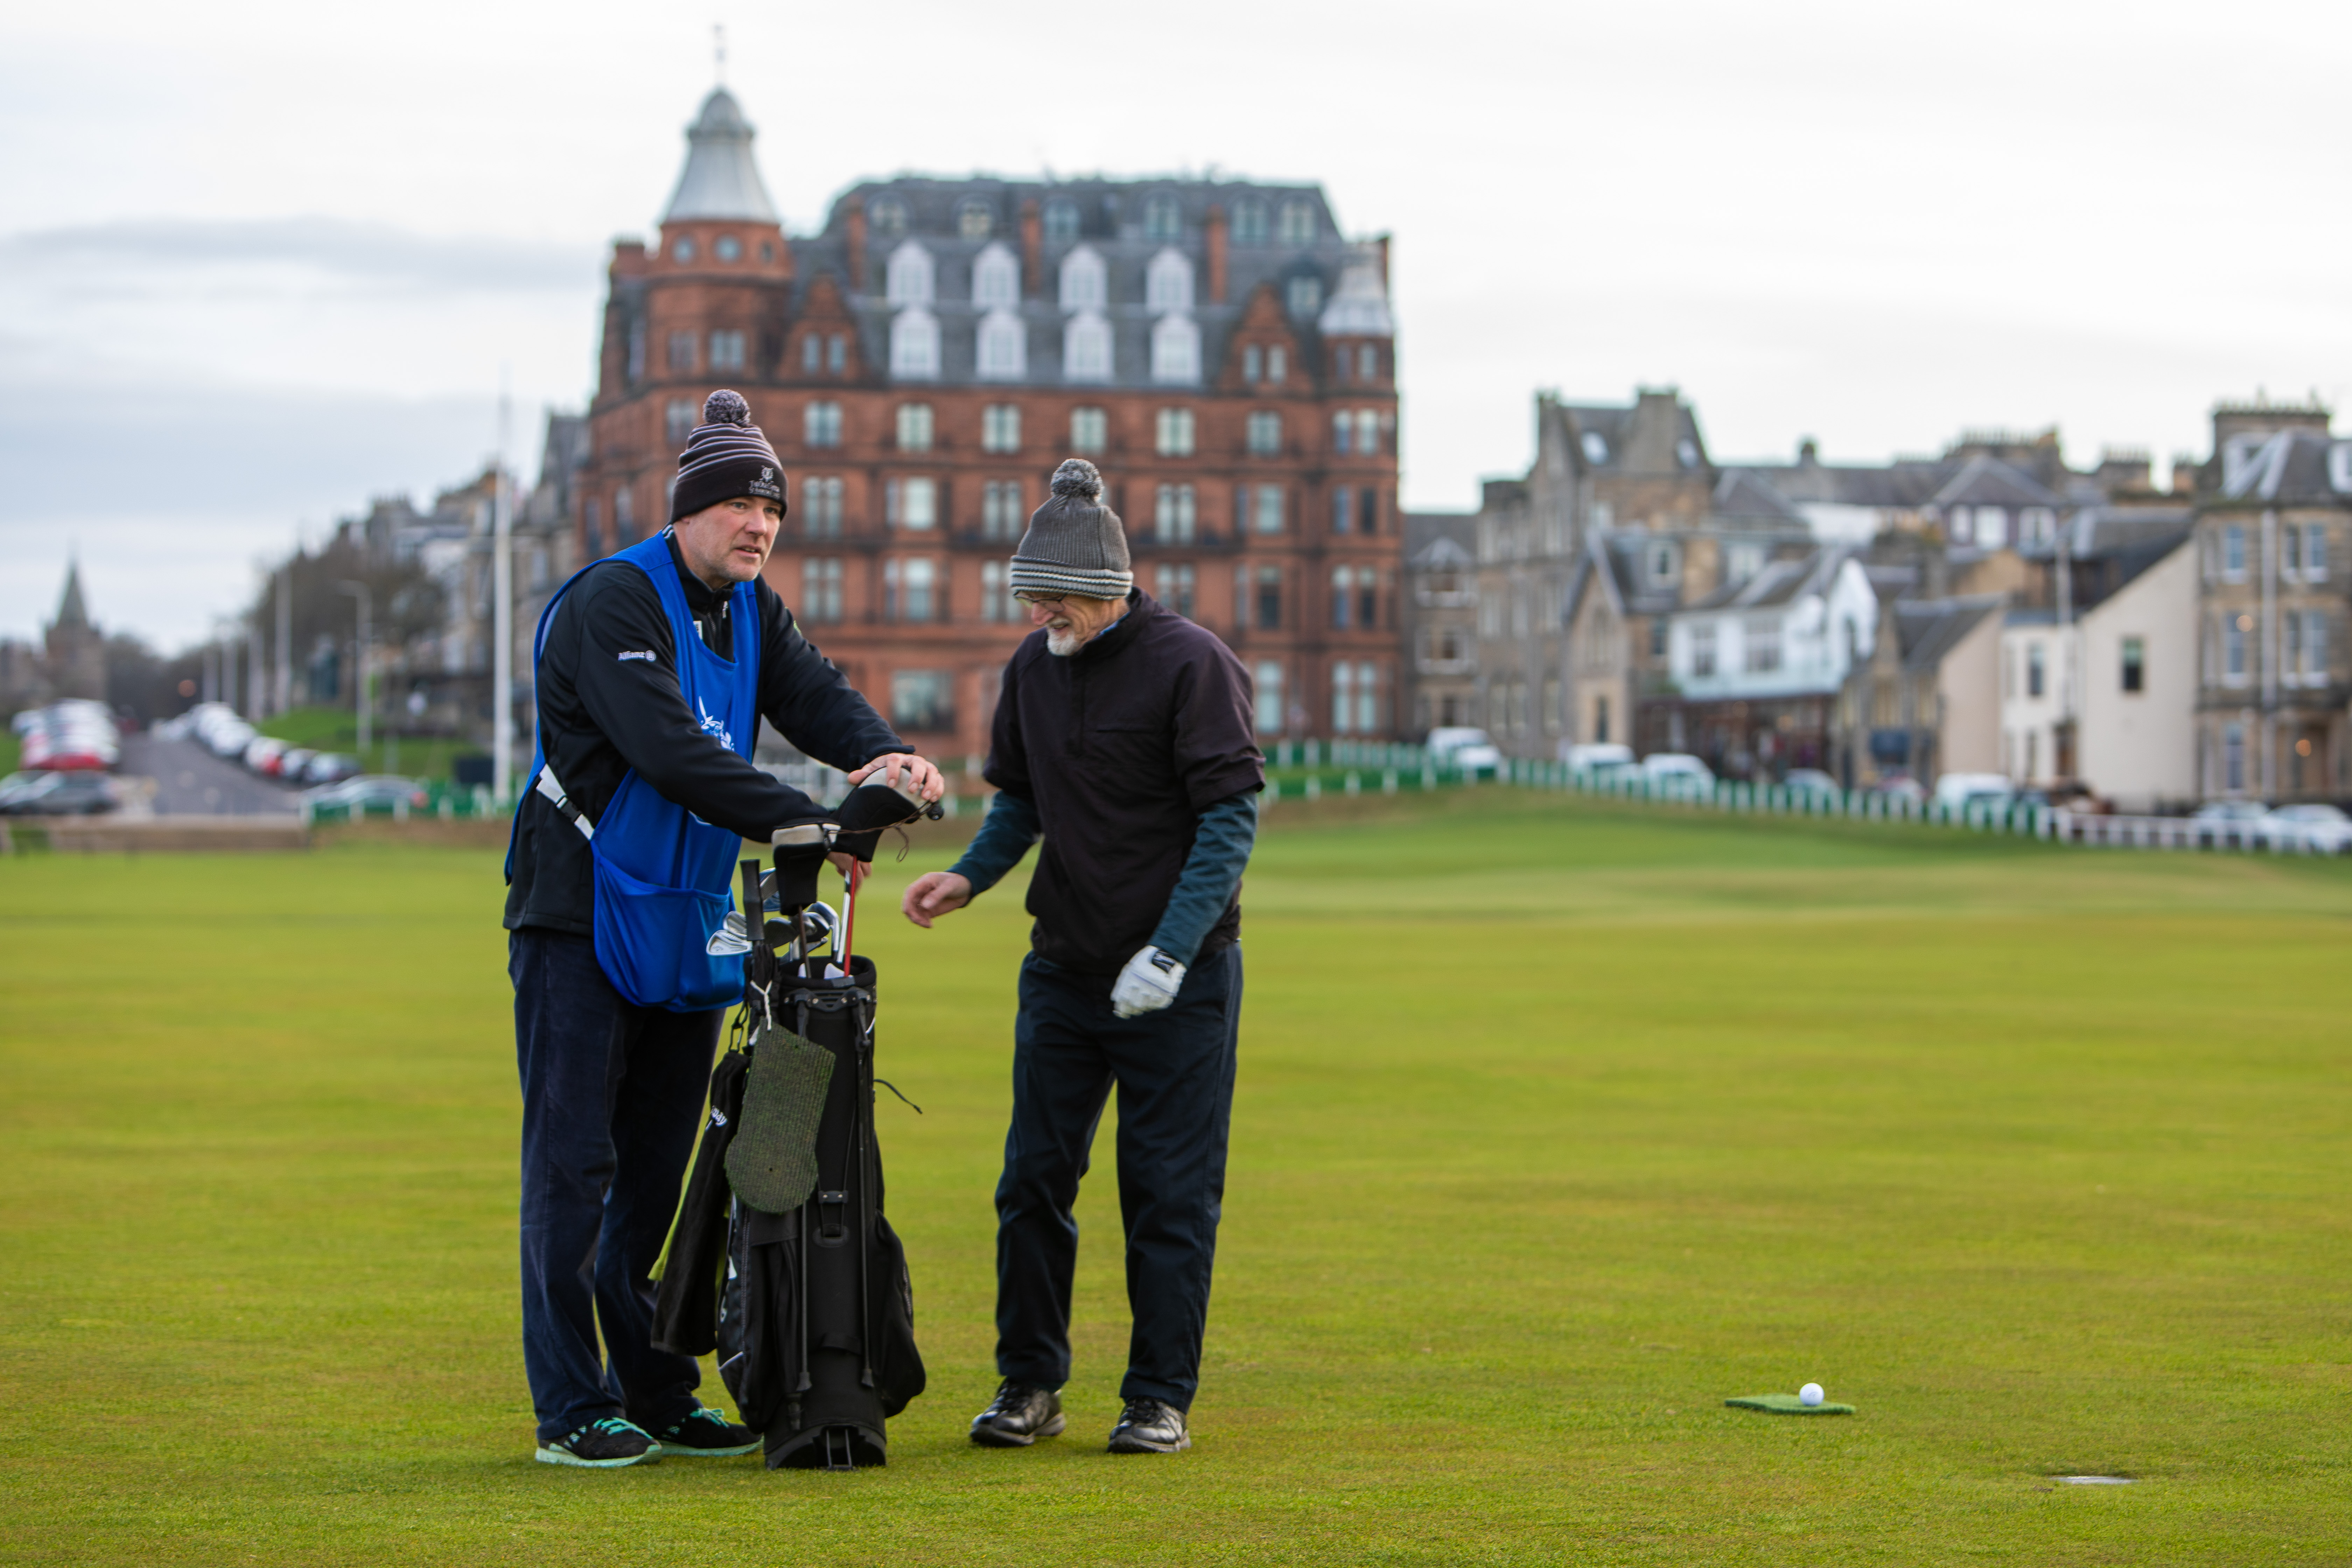 Getting into the swing of golf with St Andrews caddies - The